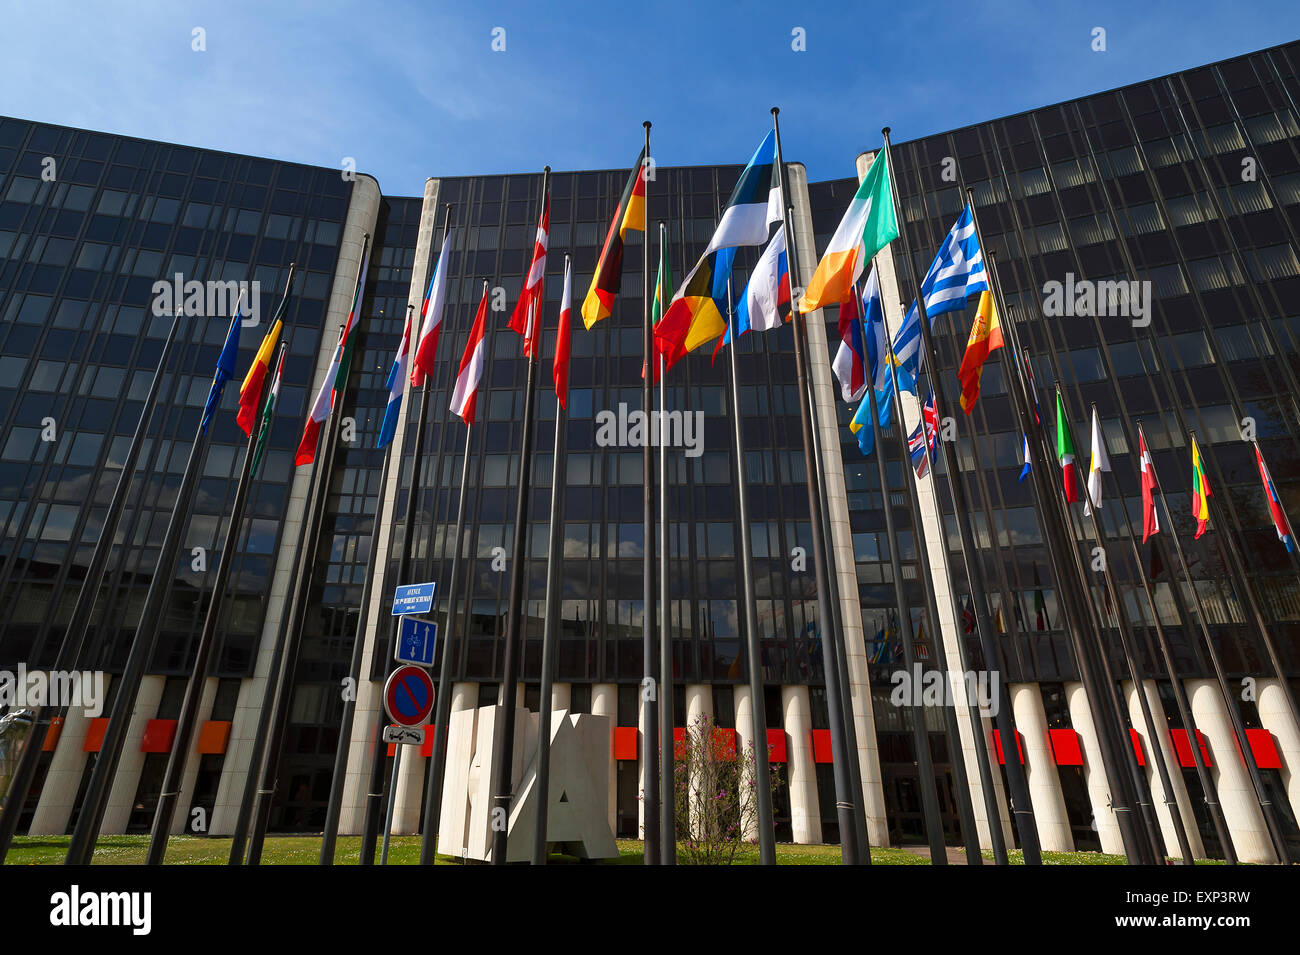 International flags in front of a building in the Eurodistrict, Strasbourg, Alsace, France Stock Photo